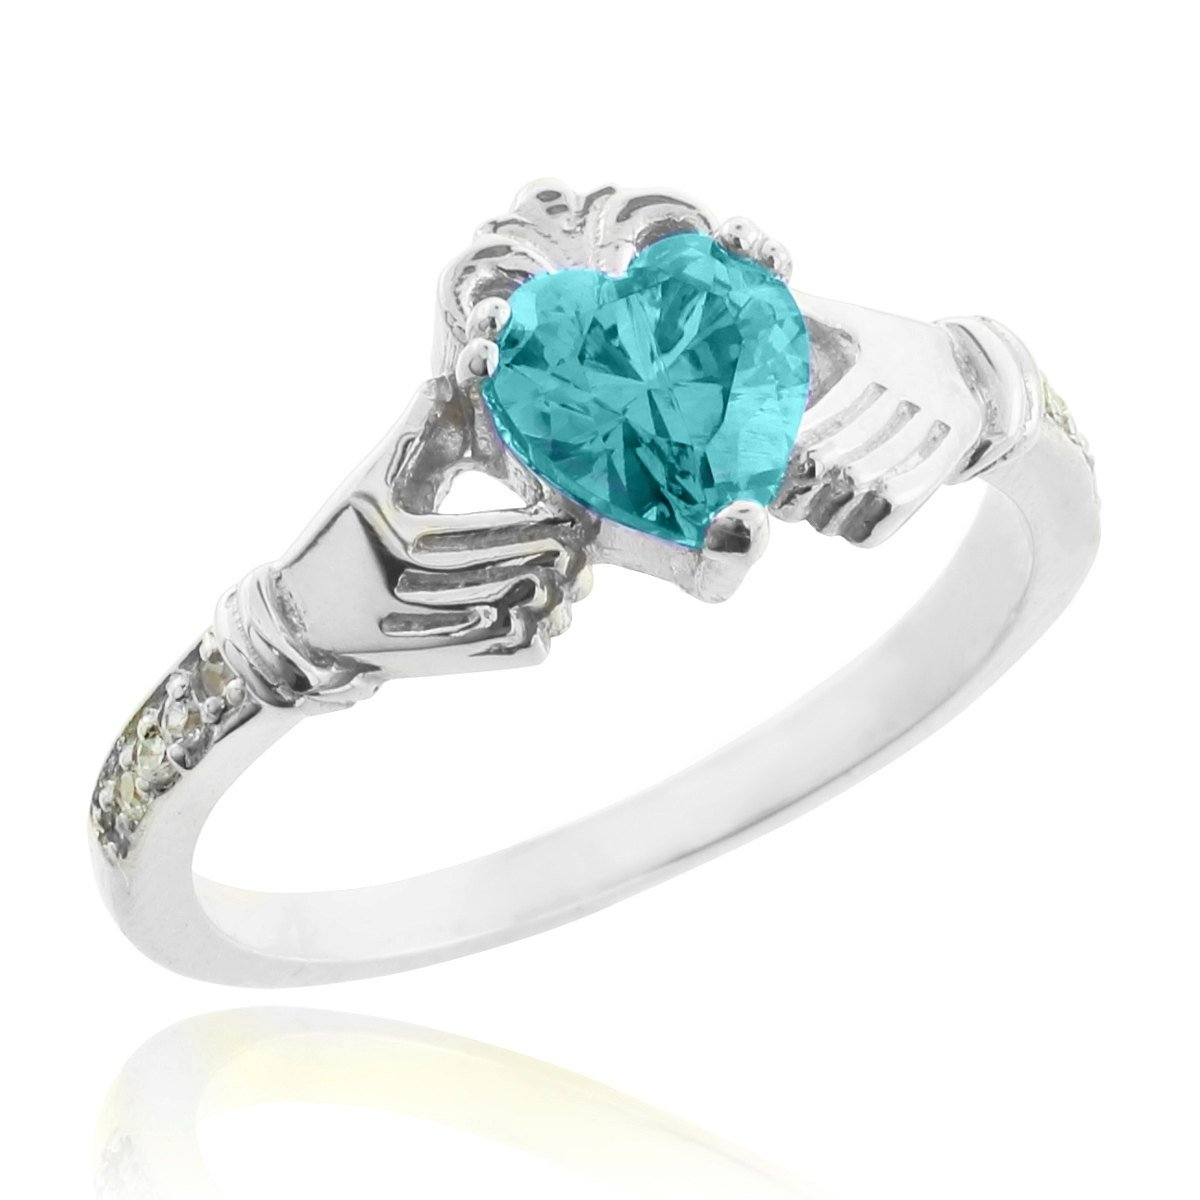 14k White Gold March Birthstone CZ Heart Claddagh Ring with Natural Diamonds (Size 6.75)